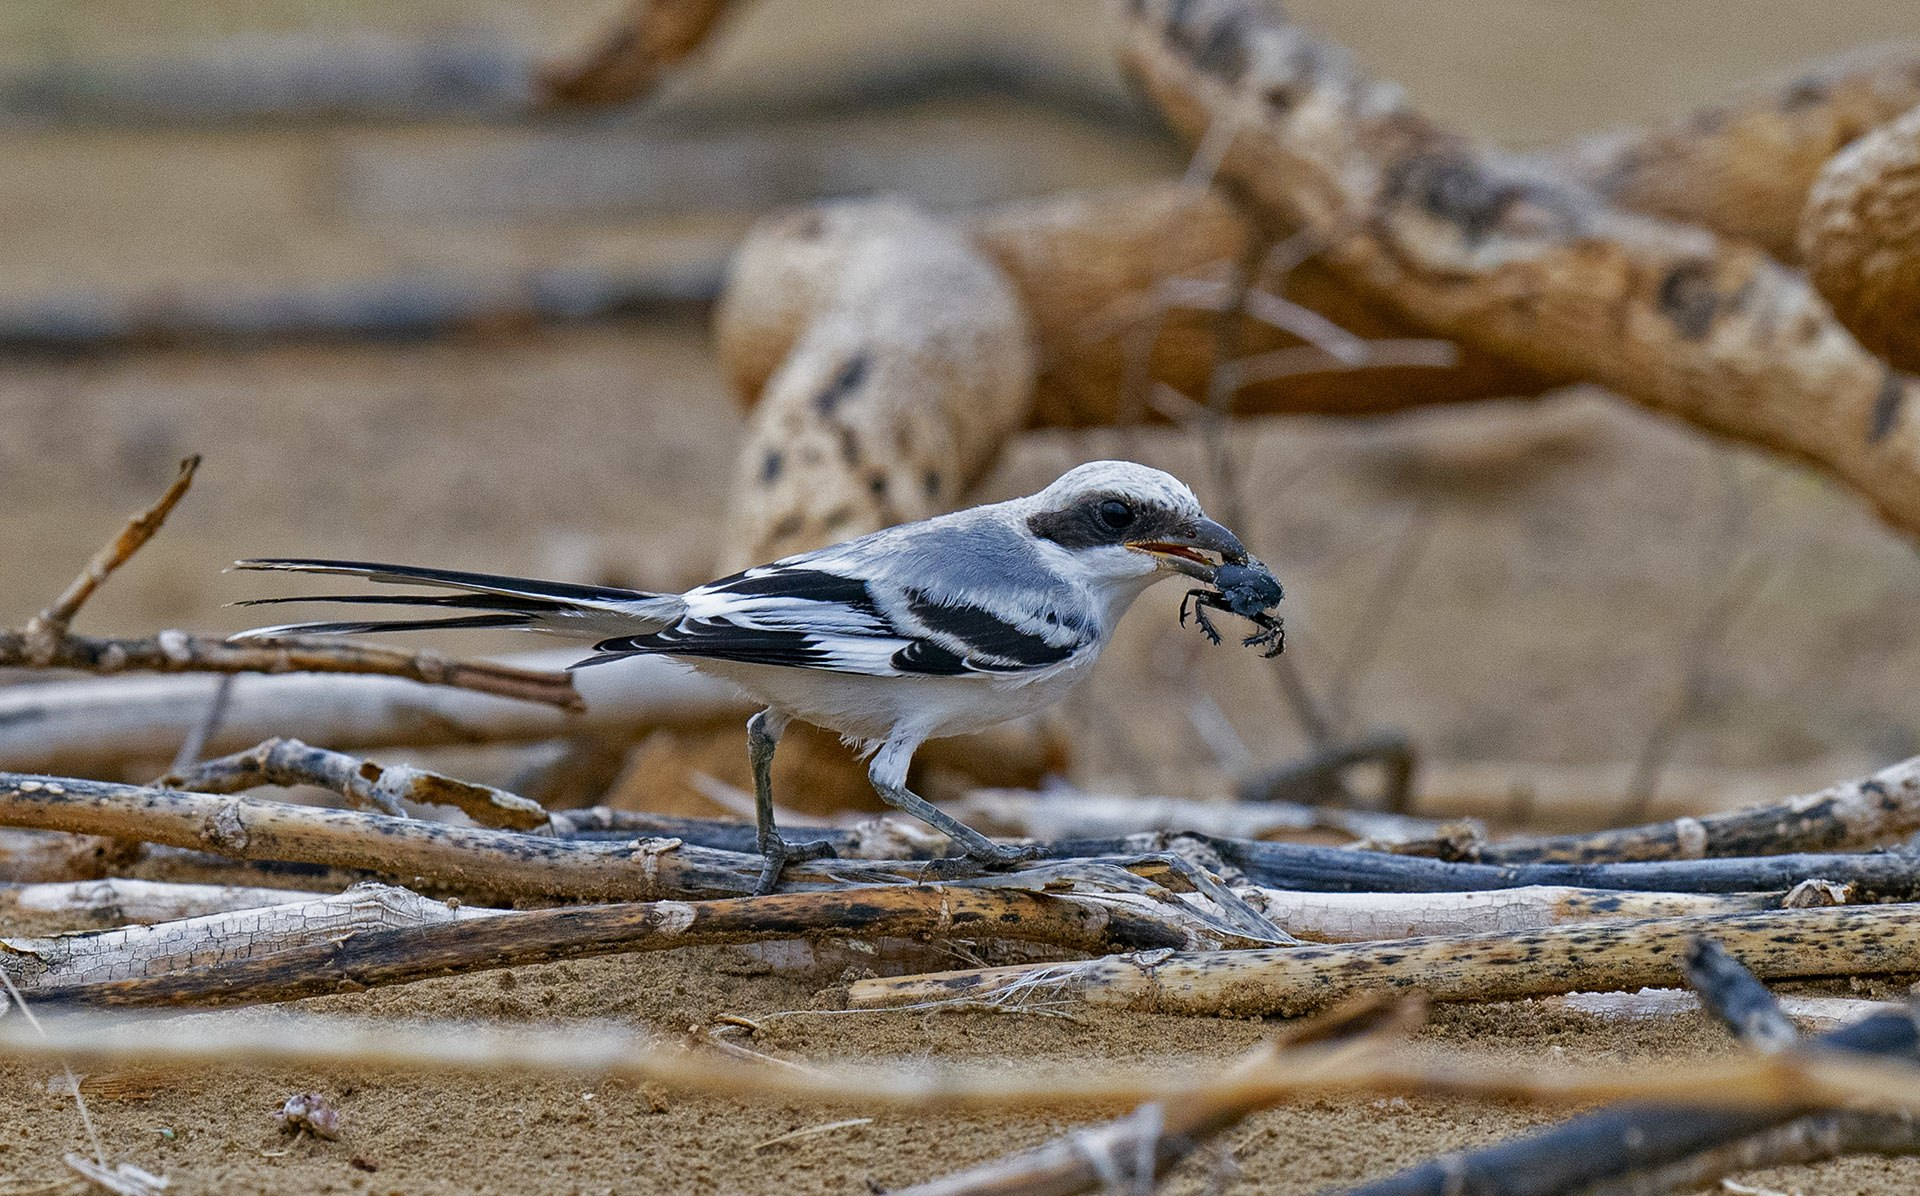 Many species of birds, including the great grey shrike, eat dung beetles, as they are a plentiful source of nutrition. Photo: Dhritiman Mukherjee